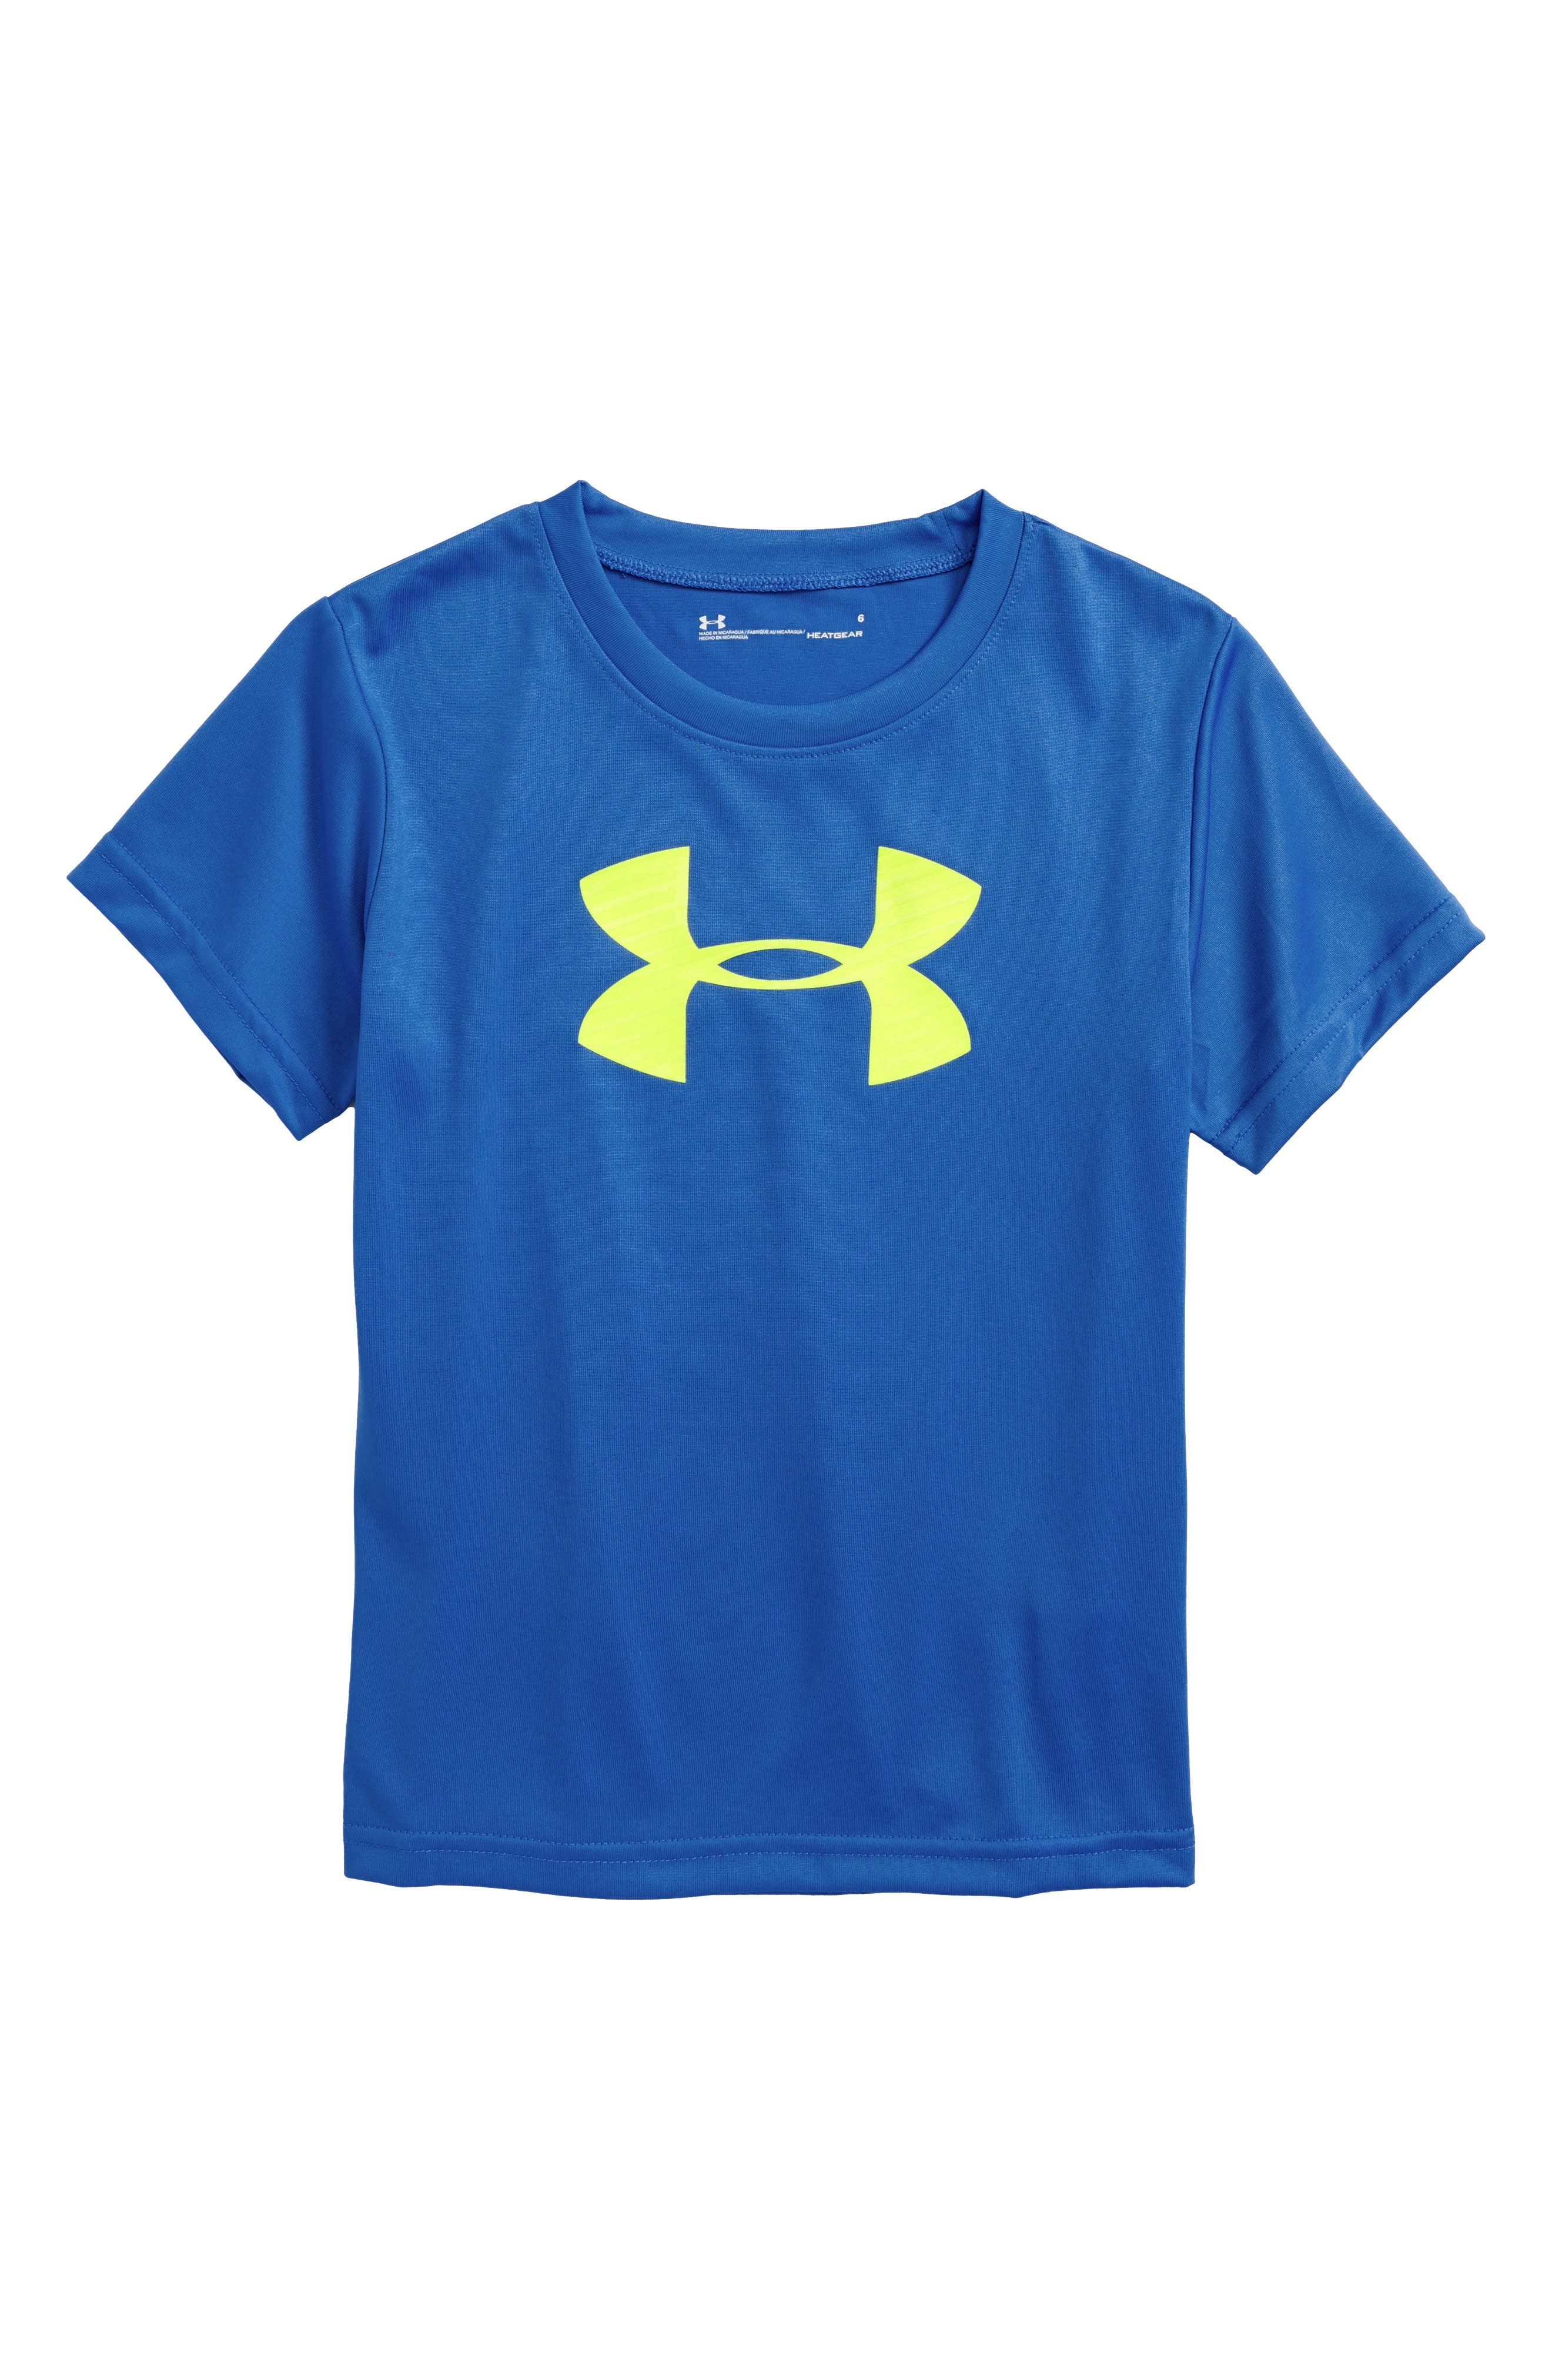 Under Armour Big Logo HeatGear® T-Shirt (Toddler Boys & Little Boys)